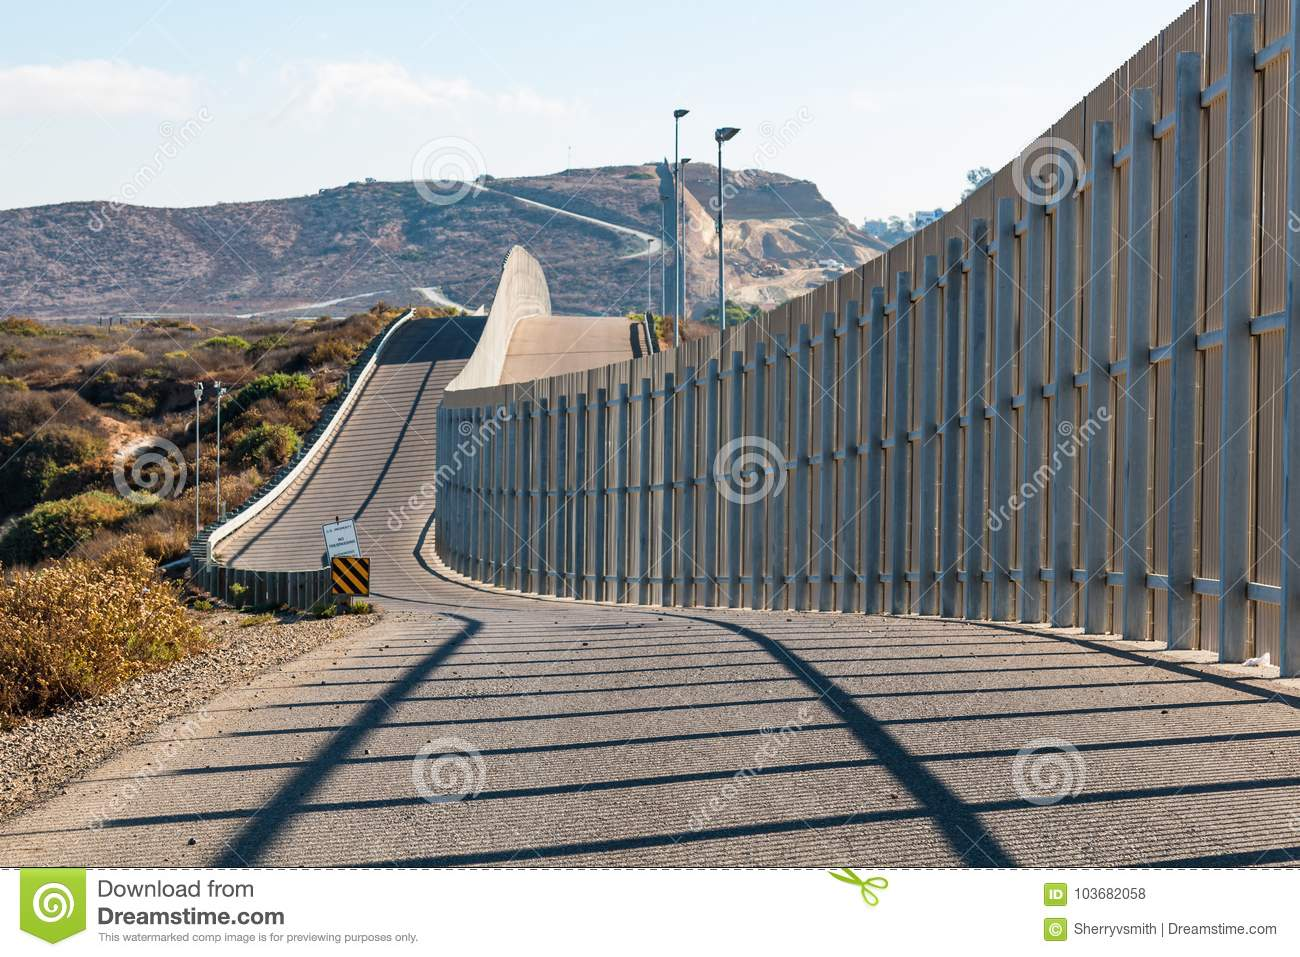 International Border Wall Between San Diego and Tijuana Extending into Distant Hills